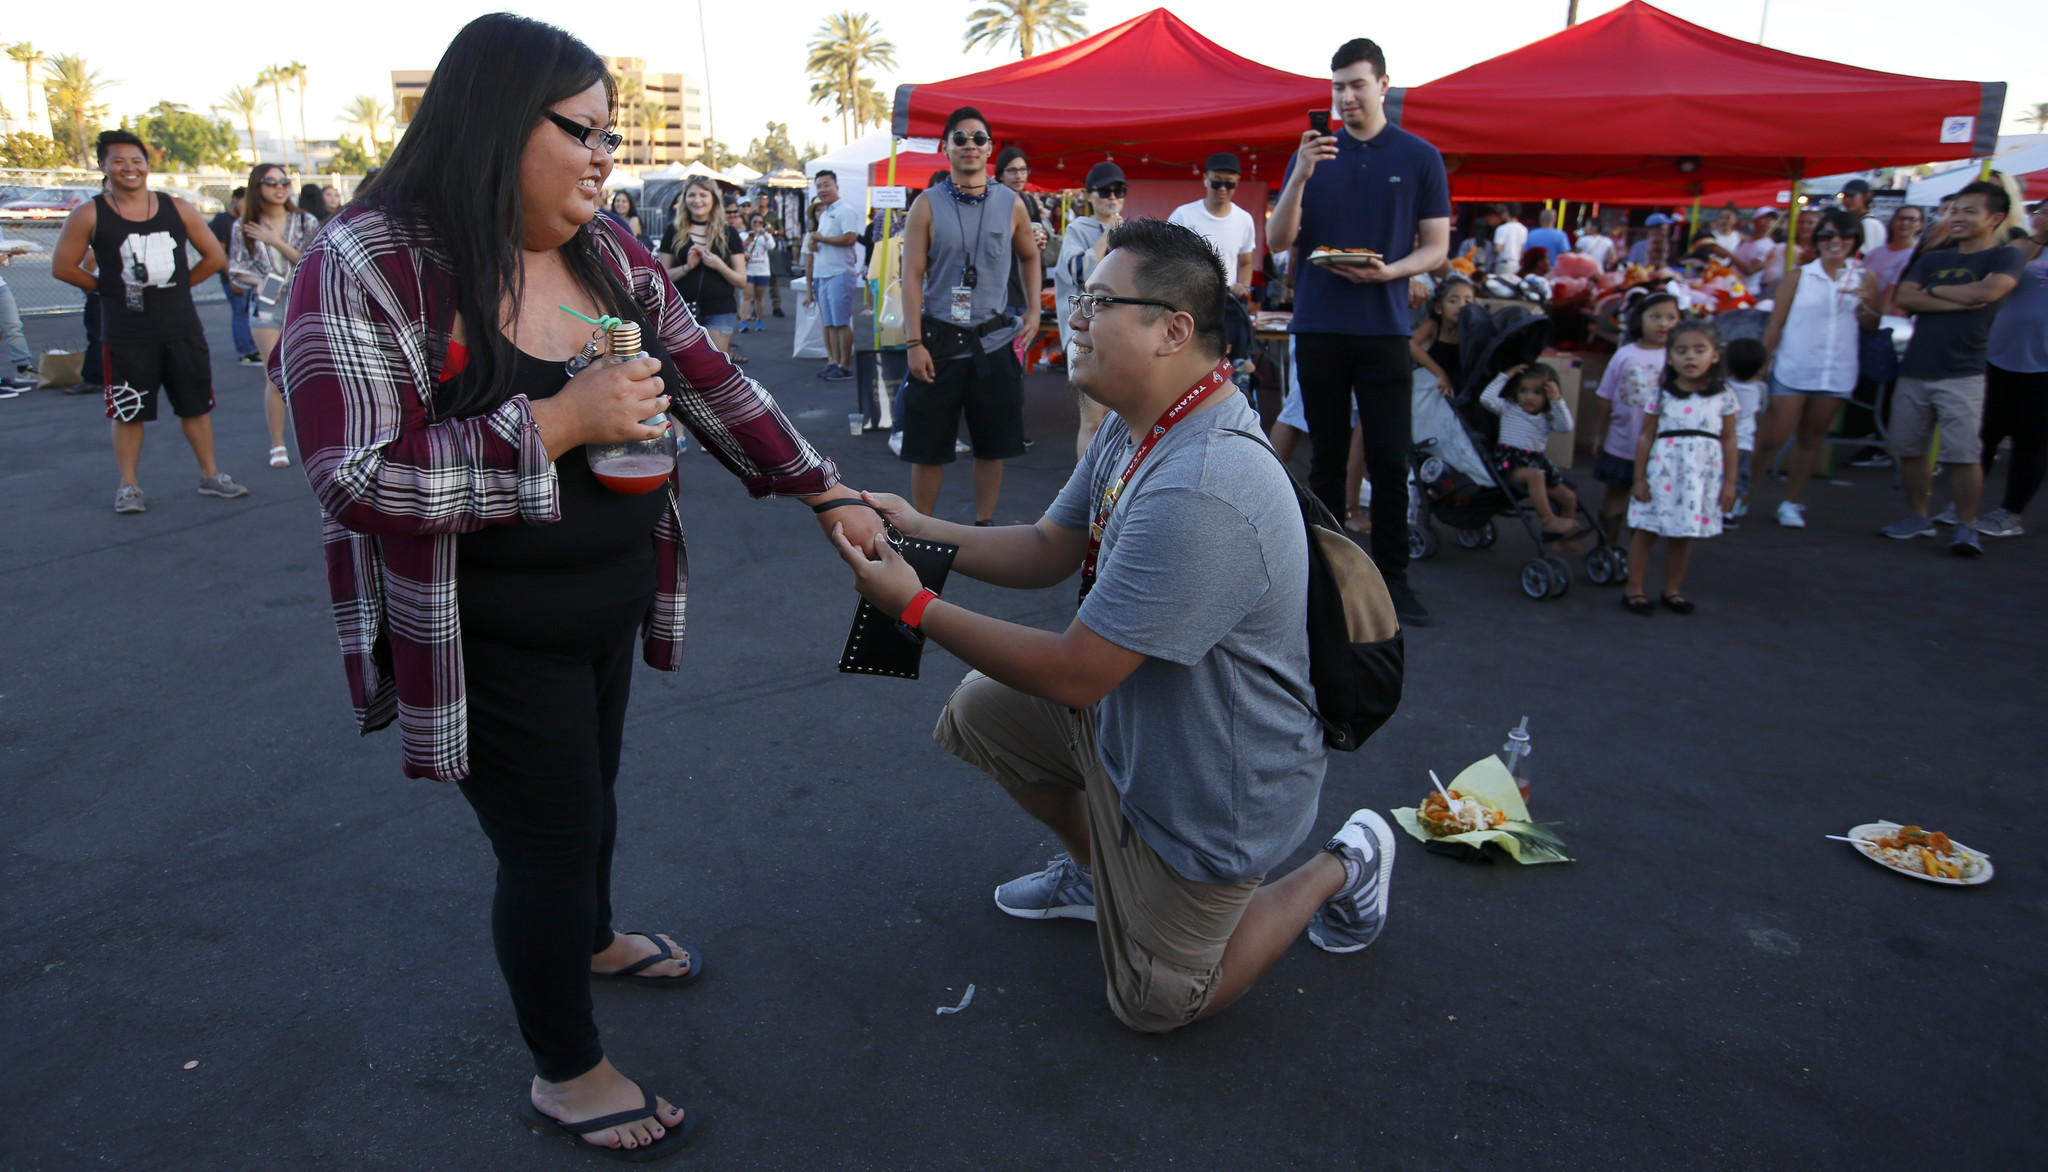 Lisa Thavisay listens while Steven Ham proposes at the 626 Night Market in Arcadia.